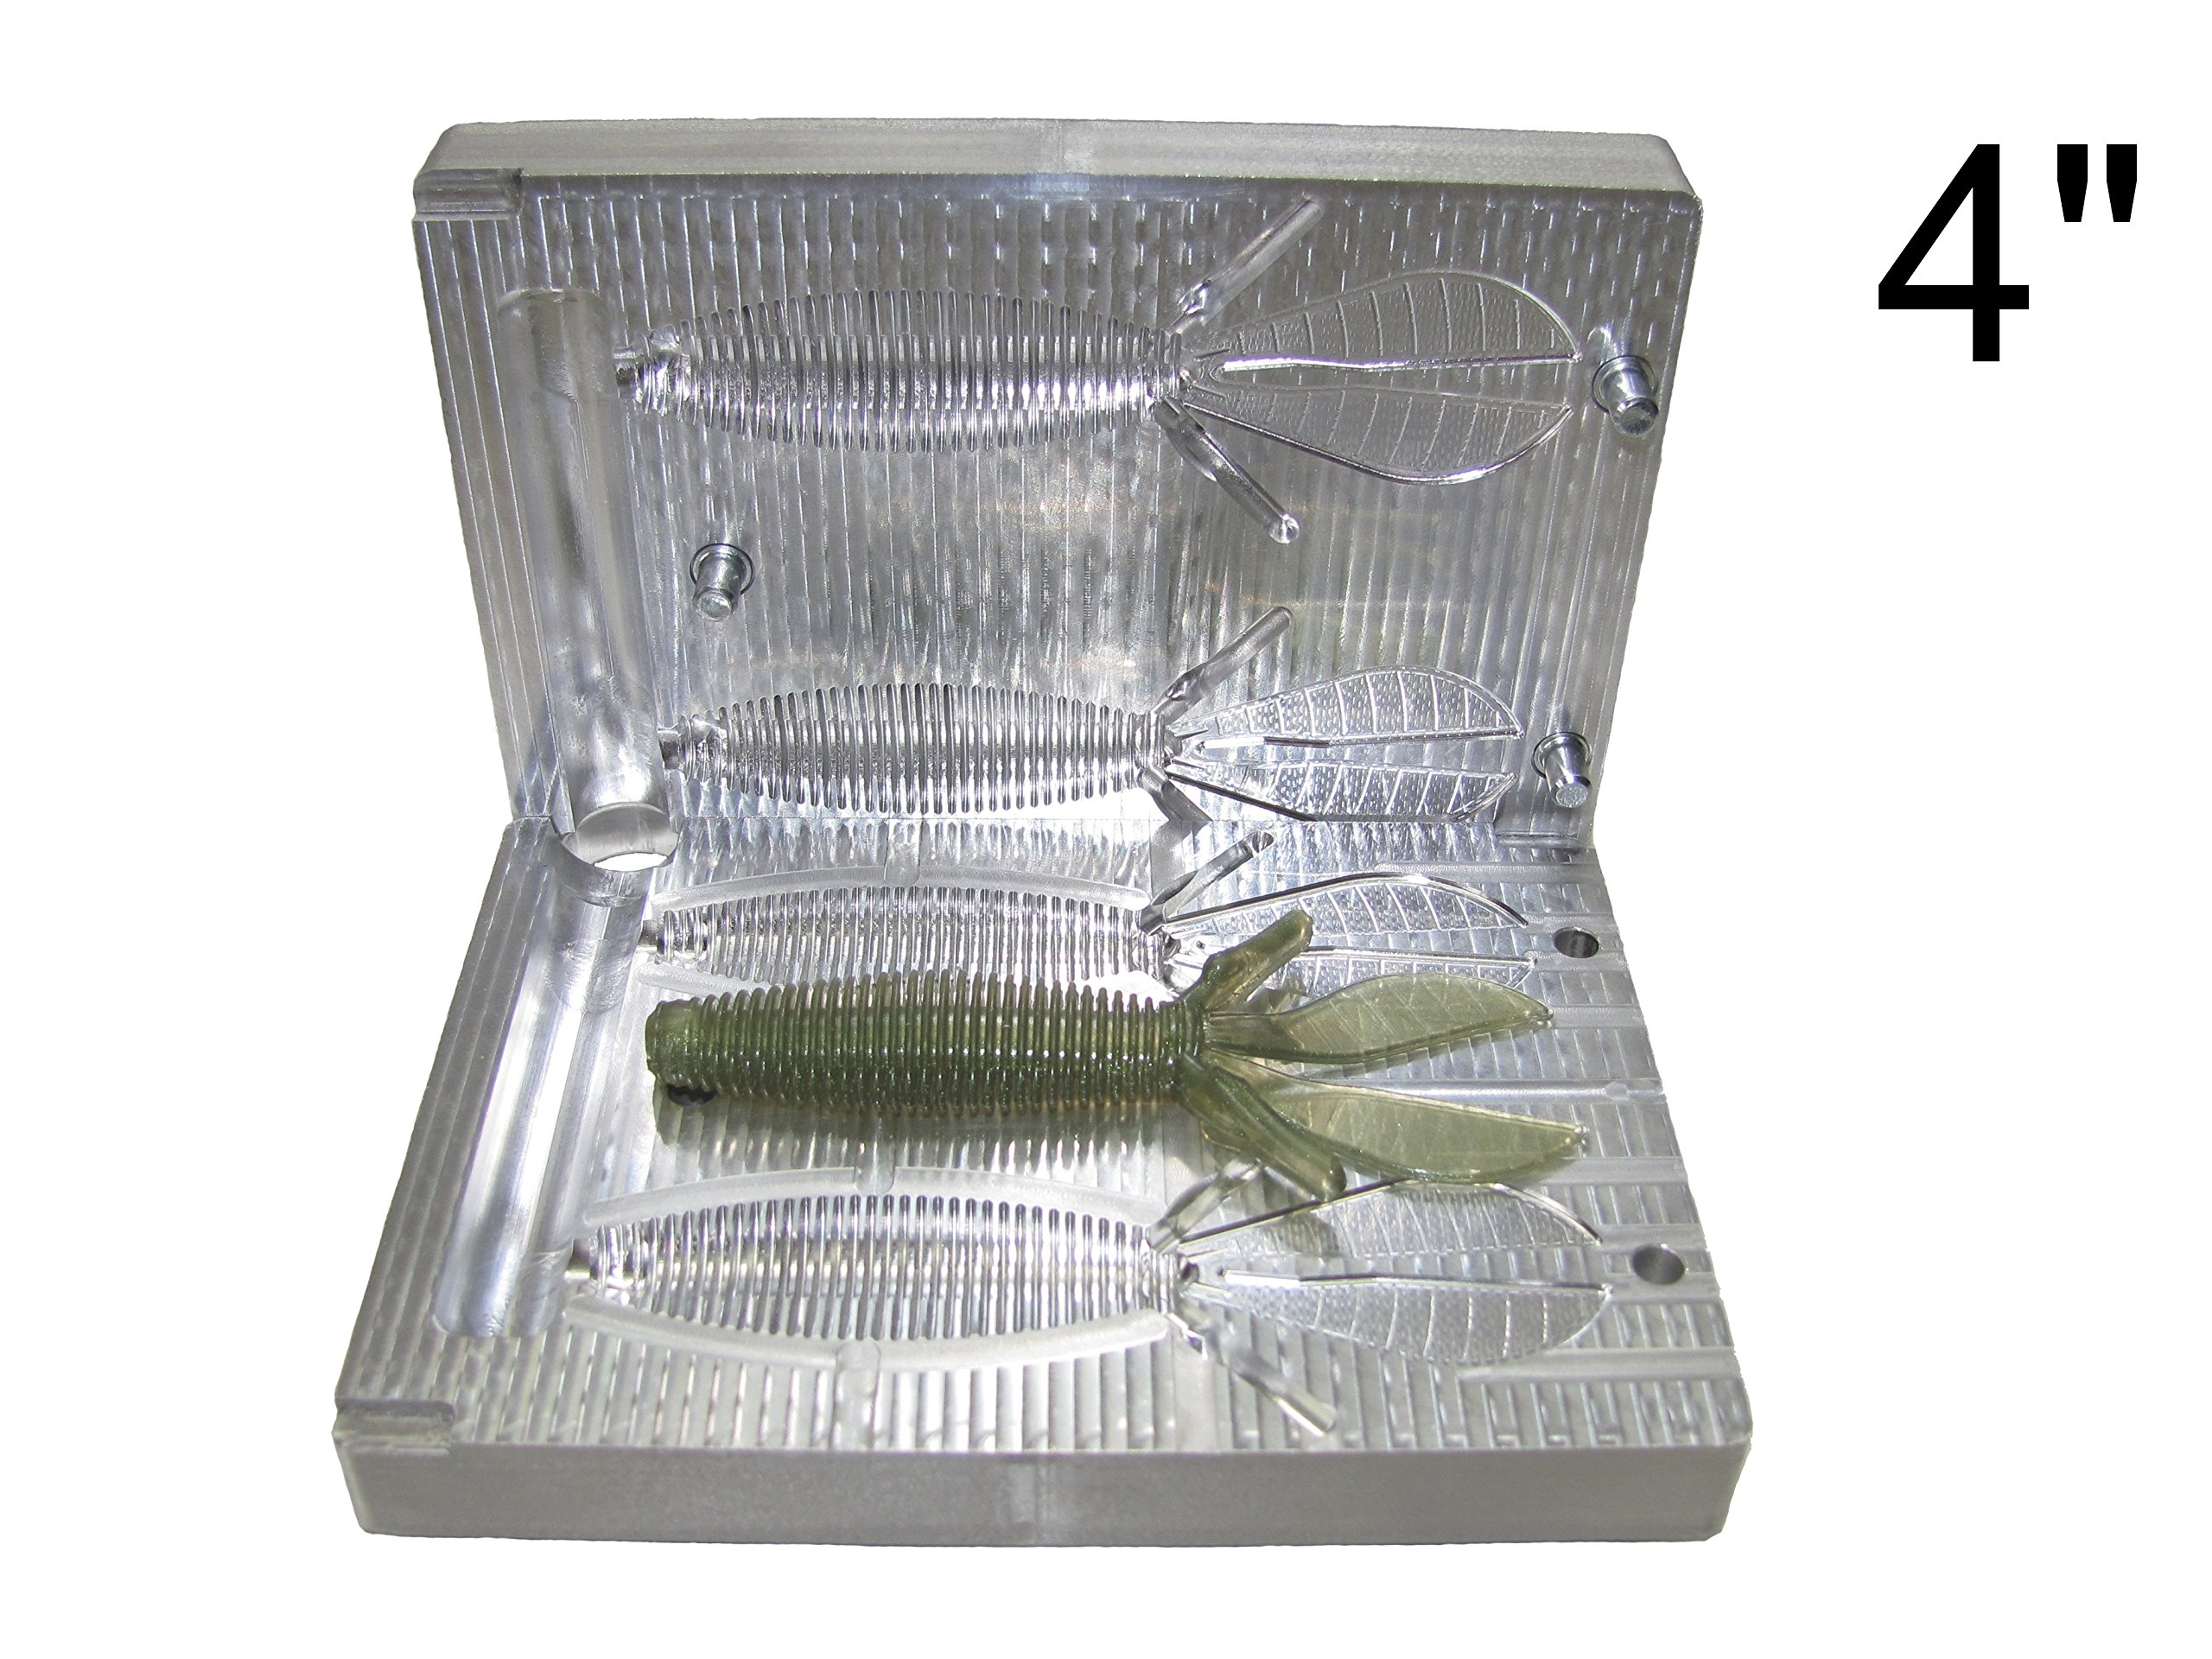 FatFish Aluminum Bait Mold Baby D Bomb Soft Plastic Lure Making Injection Mold Do-It Fishing Lures 4'' by FatFish